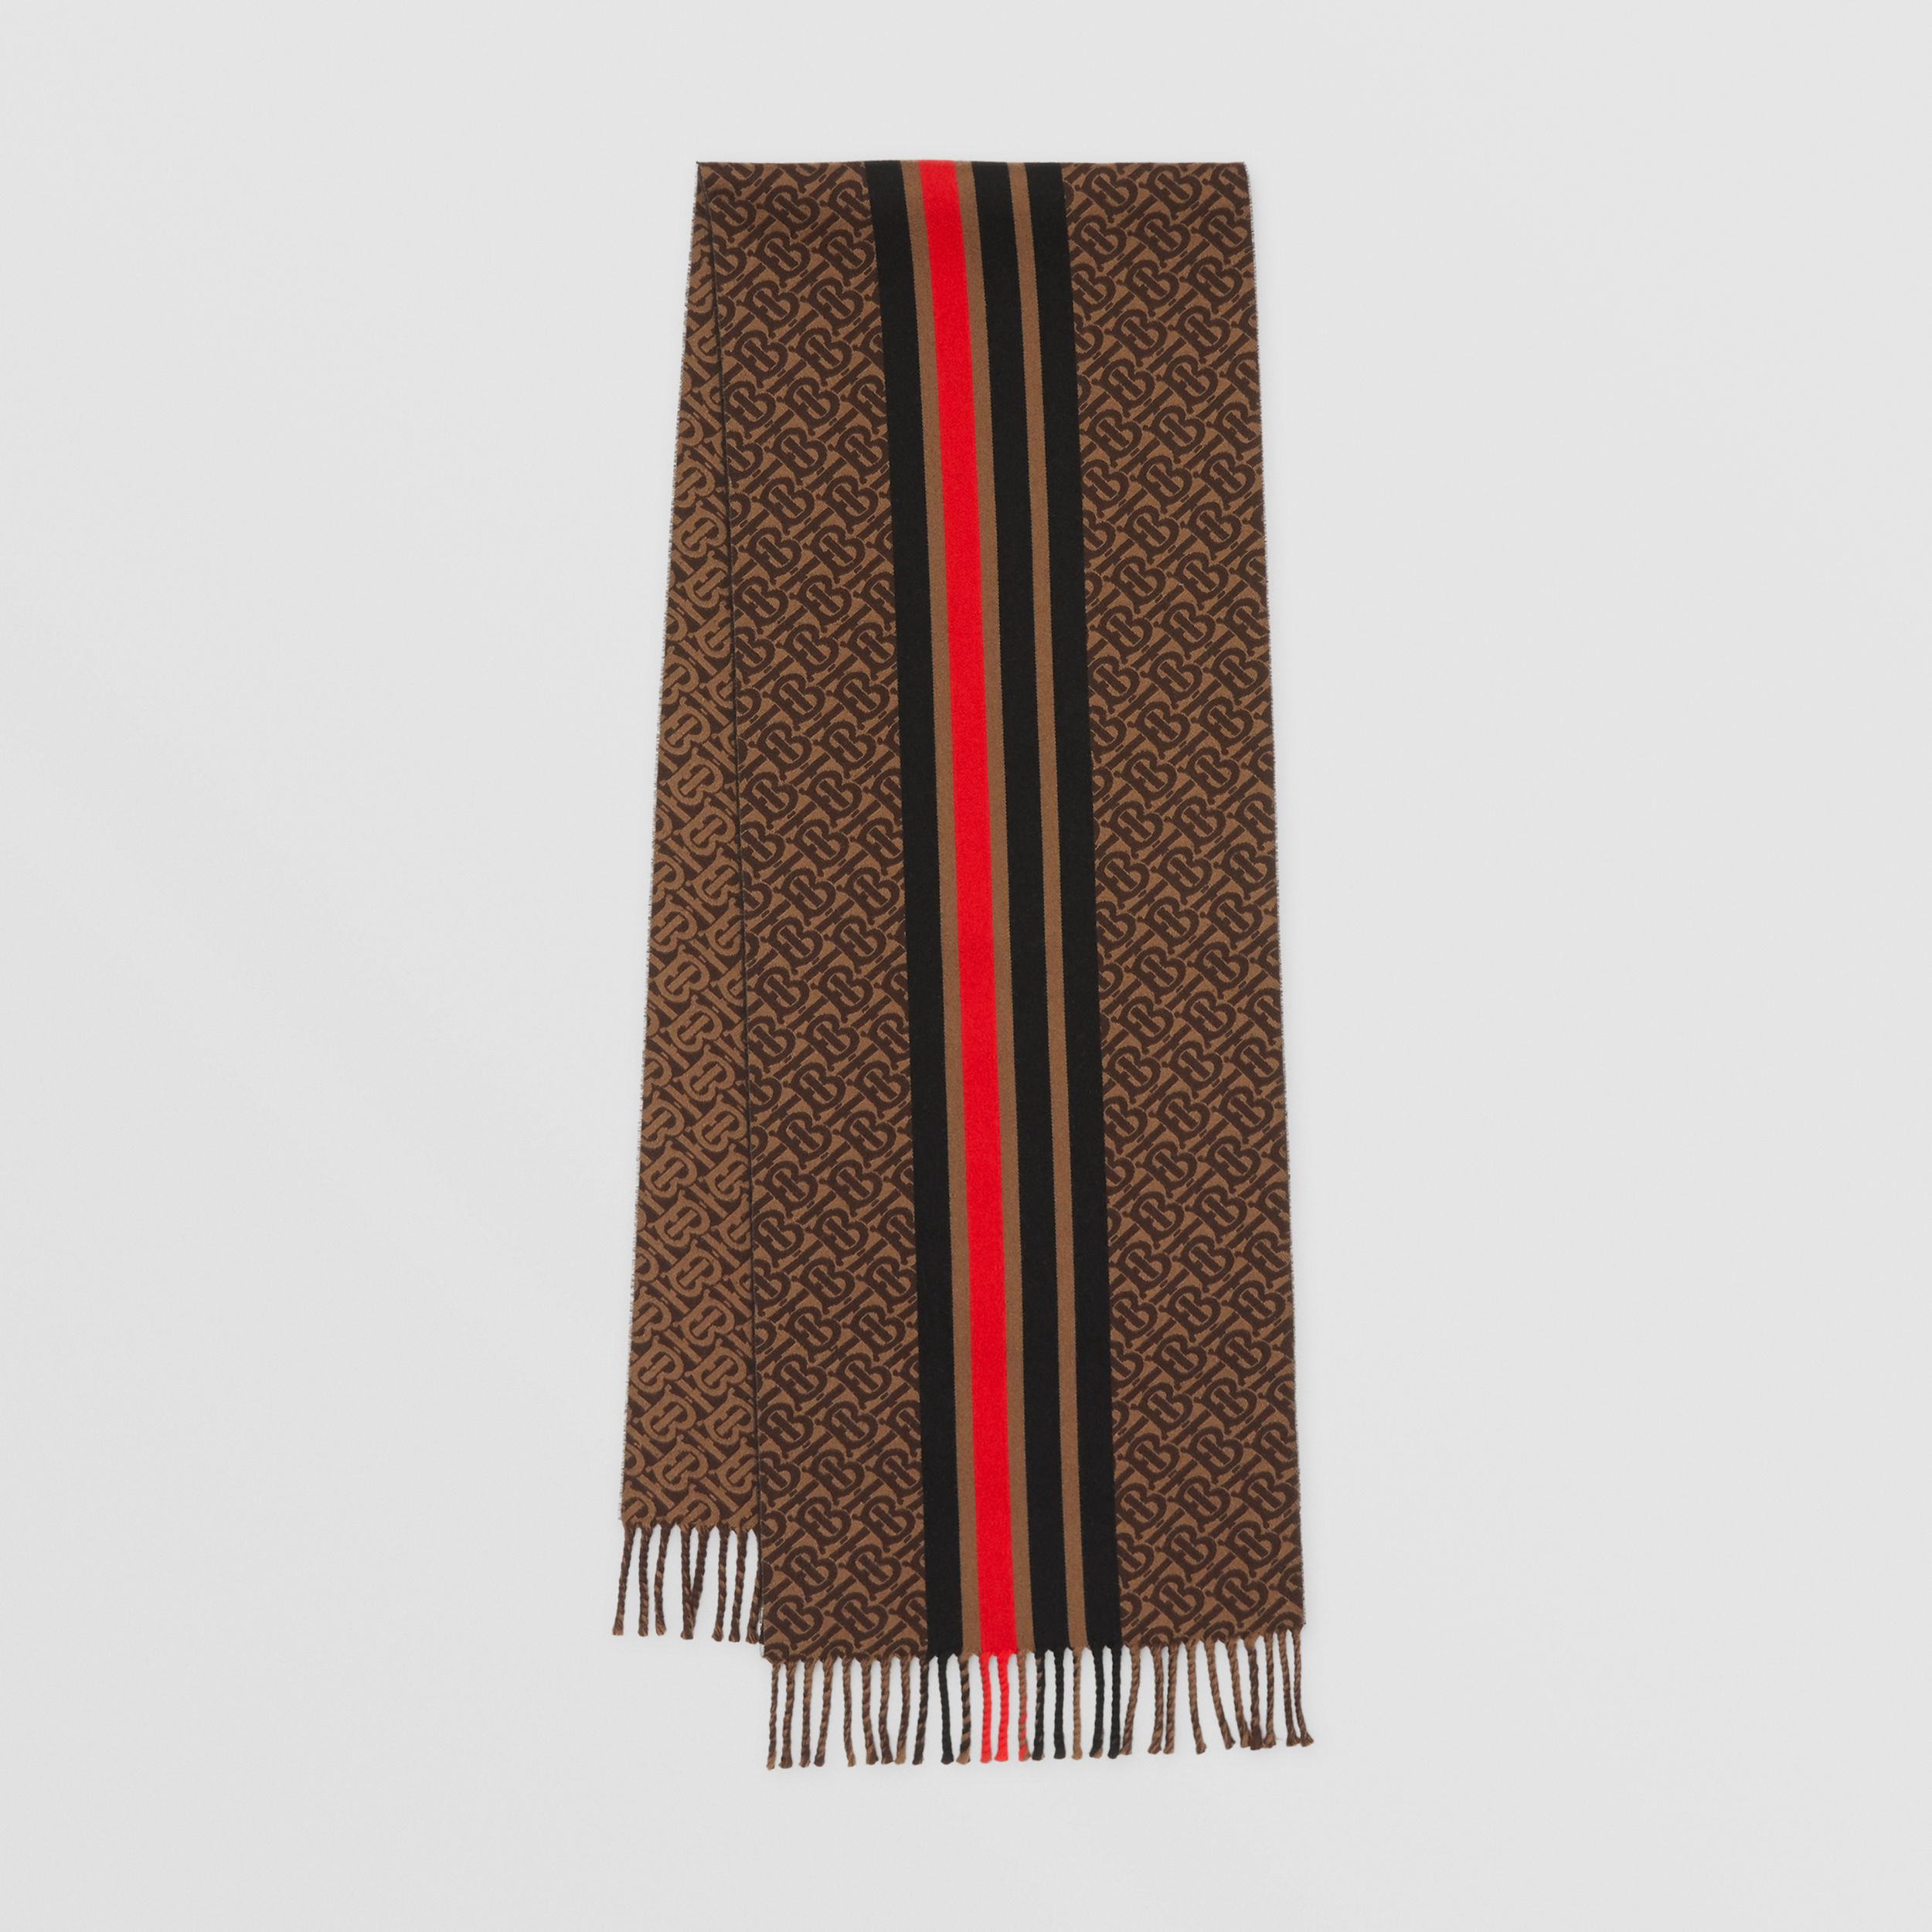 Striped Monogram Wool Cotton Jacquard Scarf in Bridle Brown | Burberry - 1